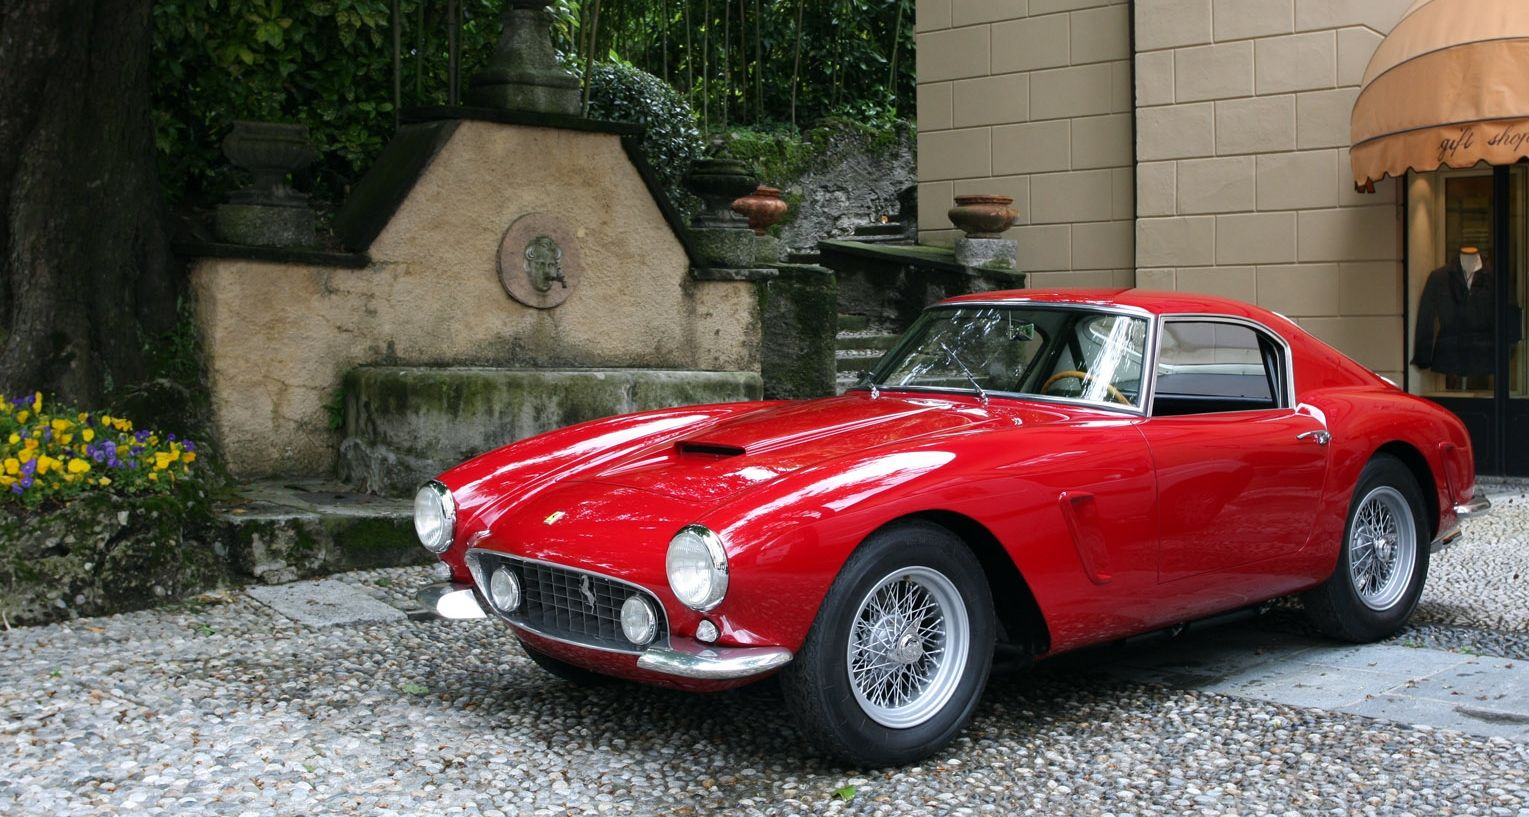 Ferrari 250 Gt Berlinetta Passo Corto  Only Cars And Cars